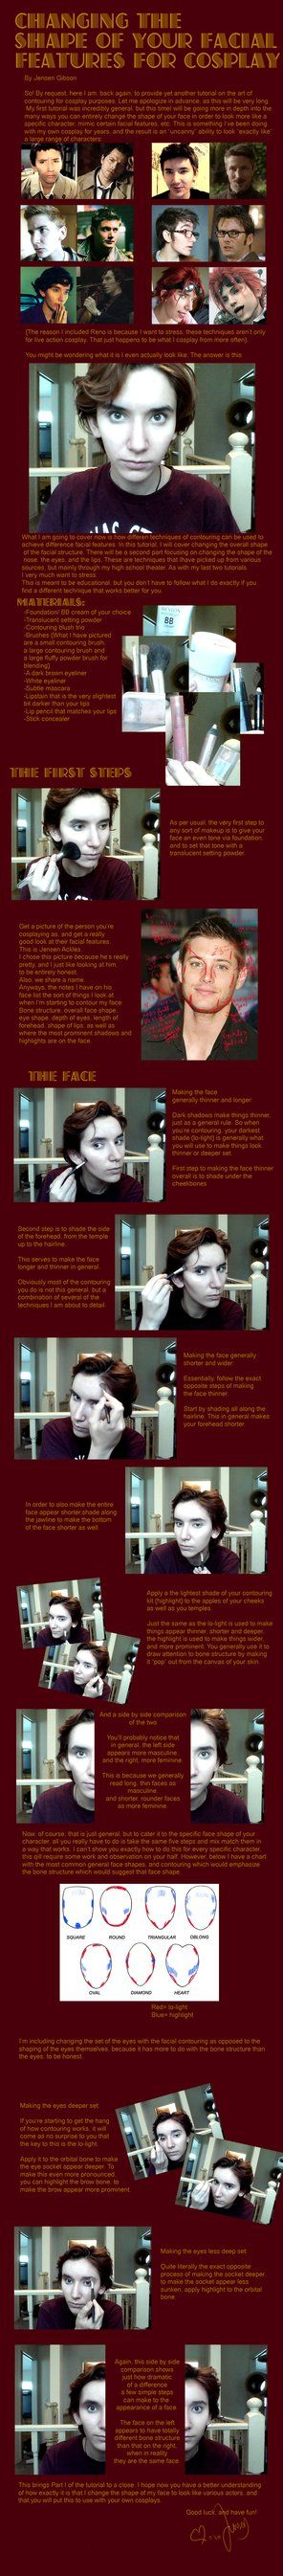 Changing the shape of your facial features, pt 1 by ~Sock-Monkey-Renegade on deviantART